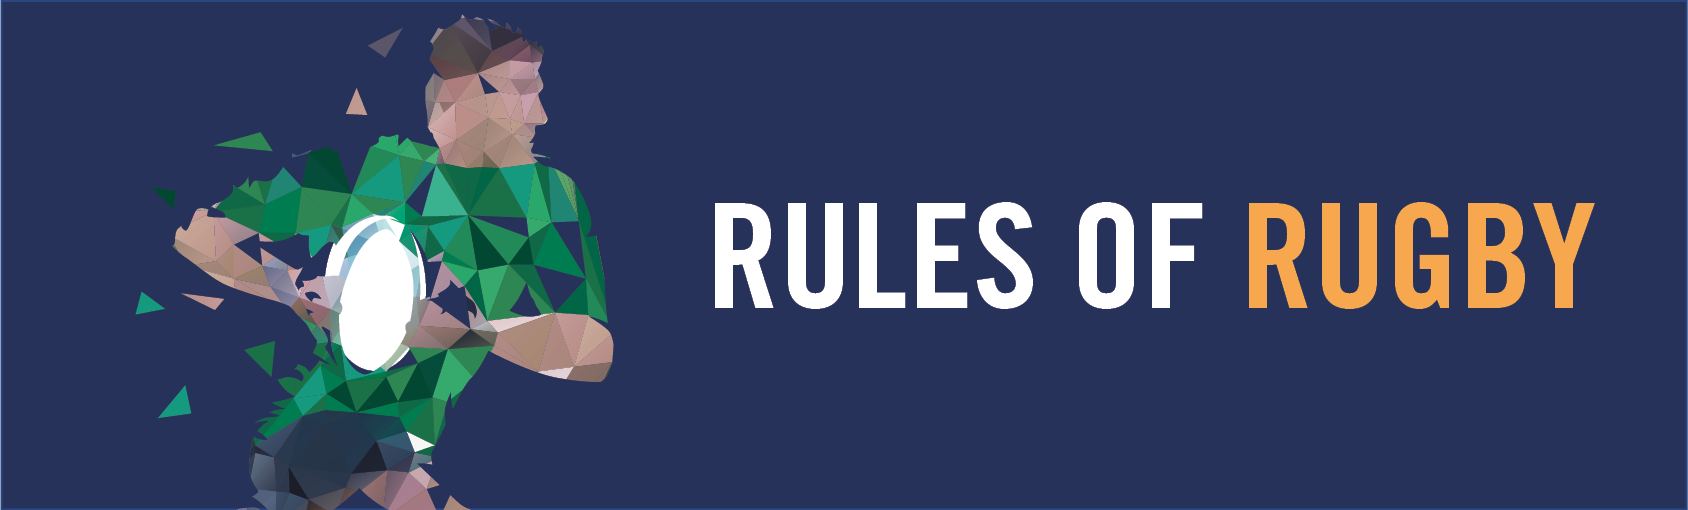 Rules of Rugby